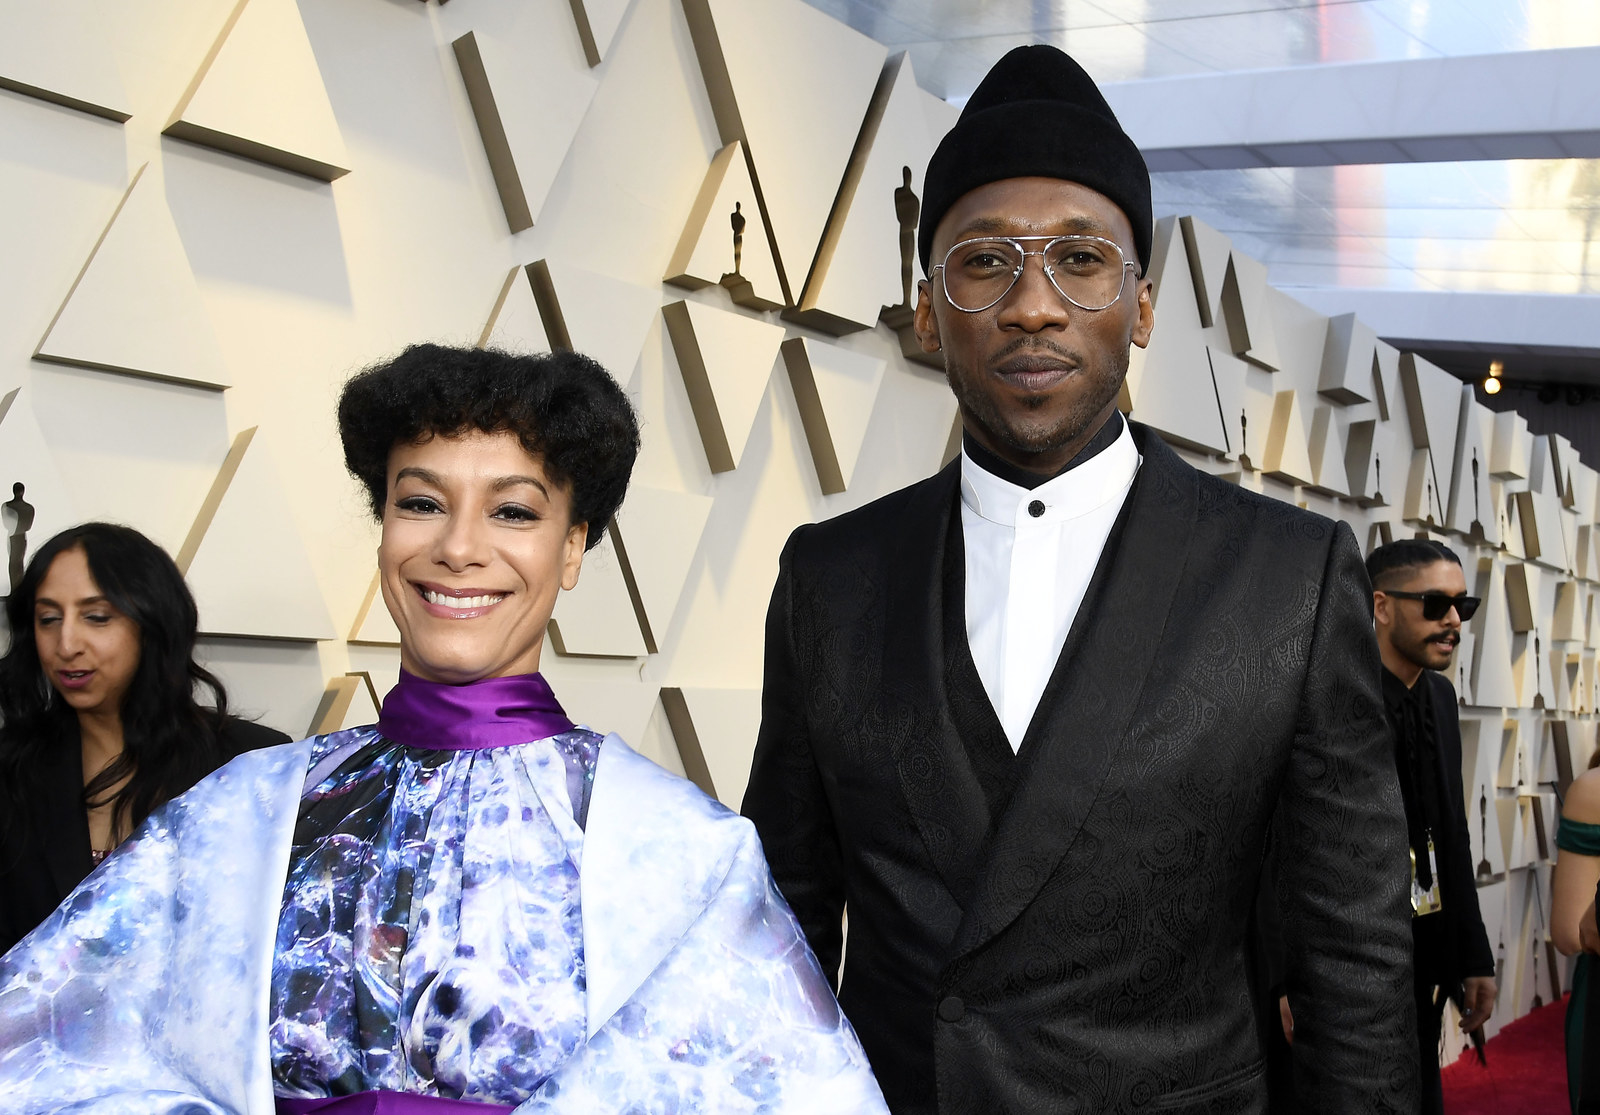 SOUND THE ALARM: MAHERSHALA ALI JUST WON HIS SECOND BEST SUPPORTING ACTOR OSCAR!!! -  This  makes  him the FIRST African American to win two Best Supporting Actor statues and only the second (after Denzel Washington) to win multiple acting awards.